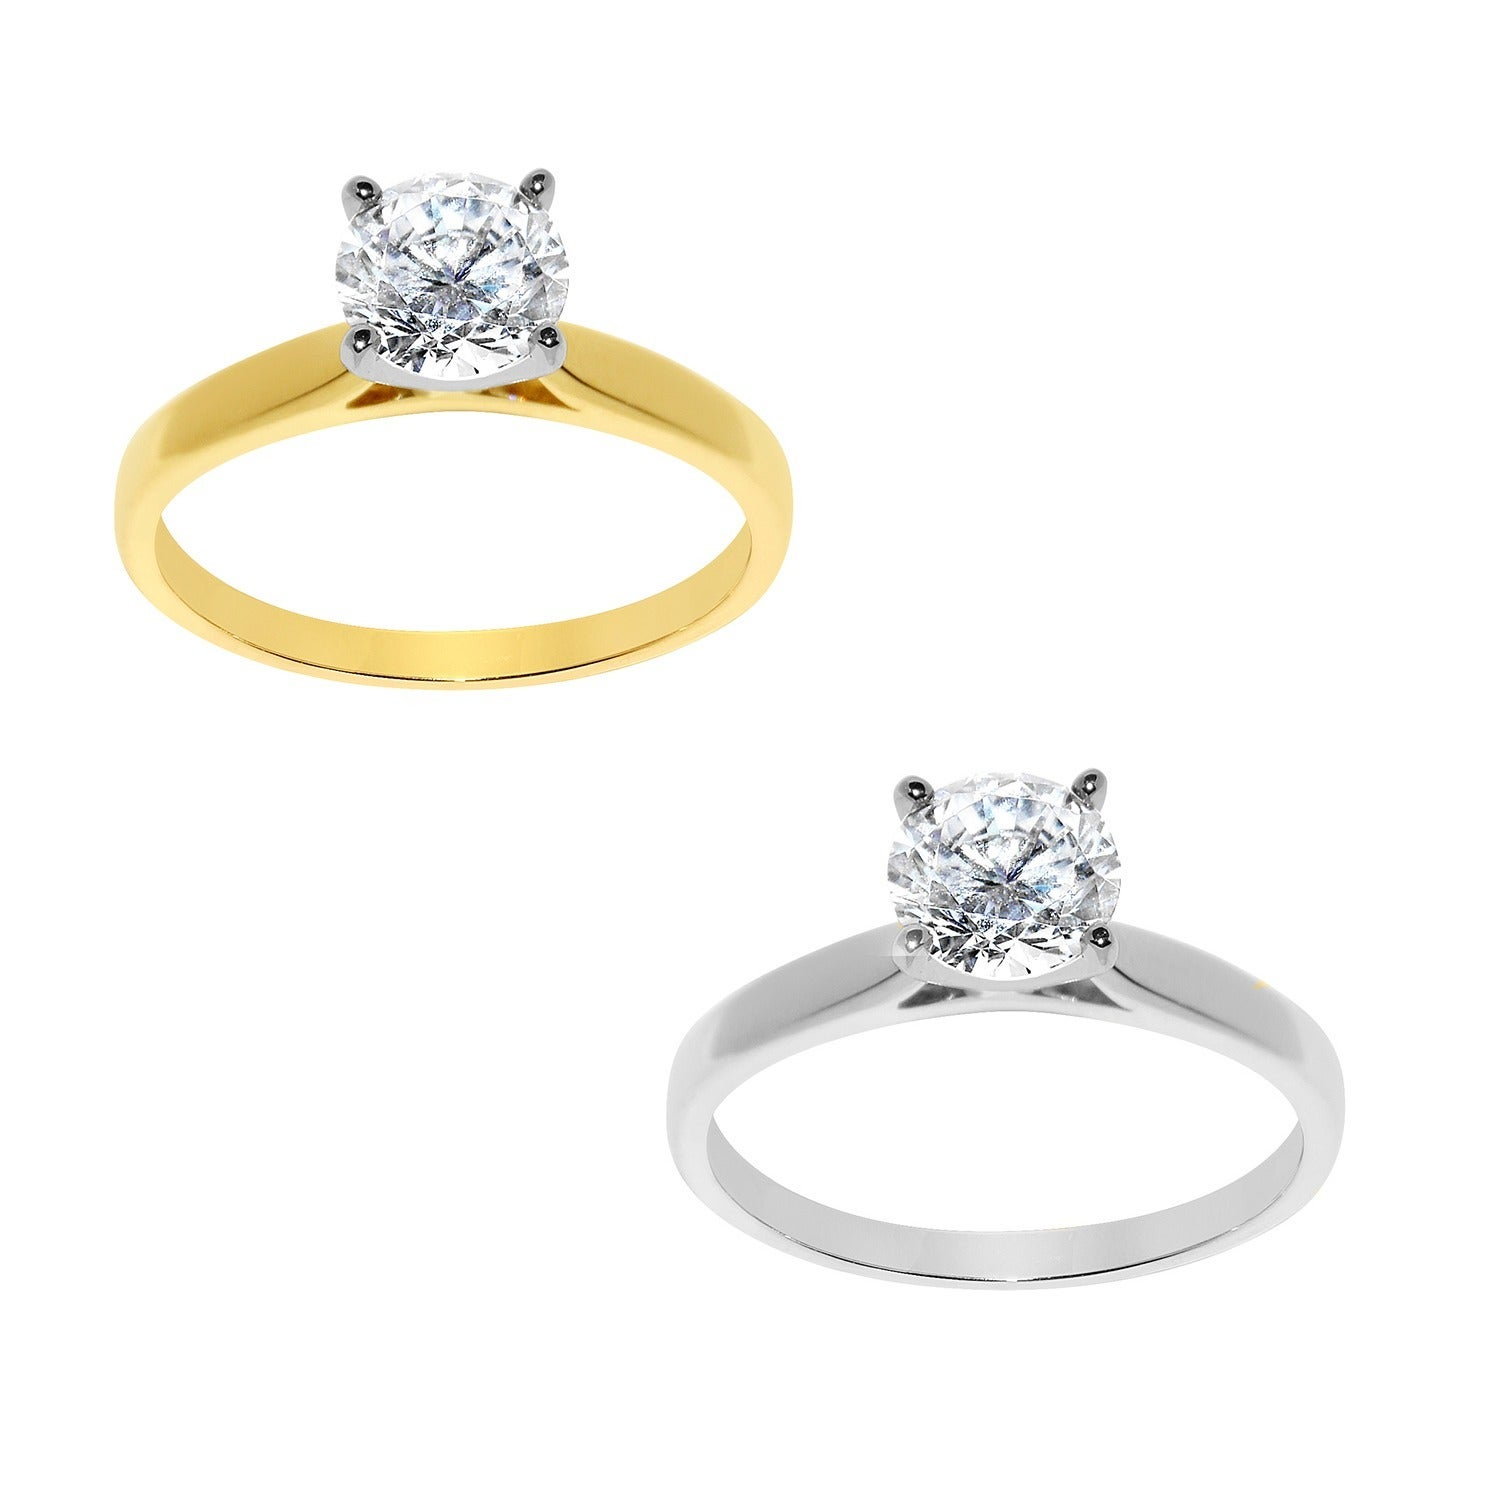 Round Cut White Cubic Zirconia Solitaire with Accent Ring in 14K Yellow Gold Over Sterling Silver